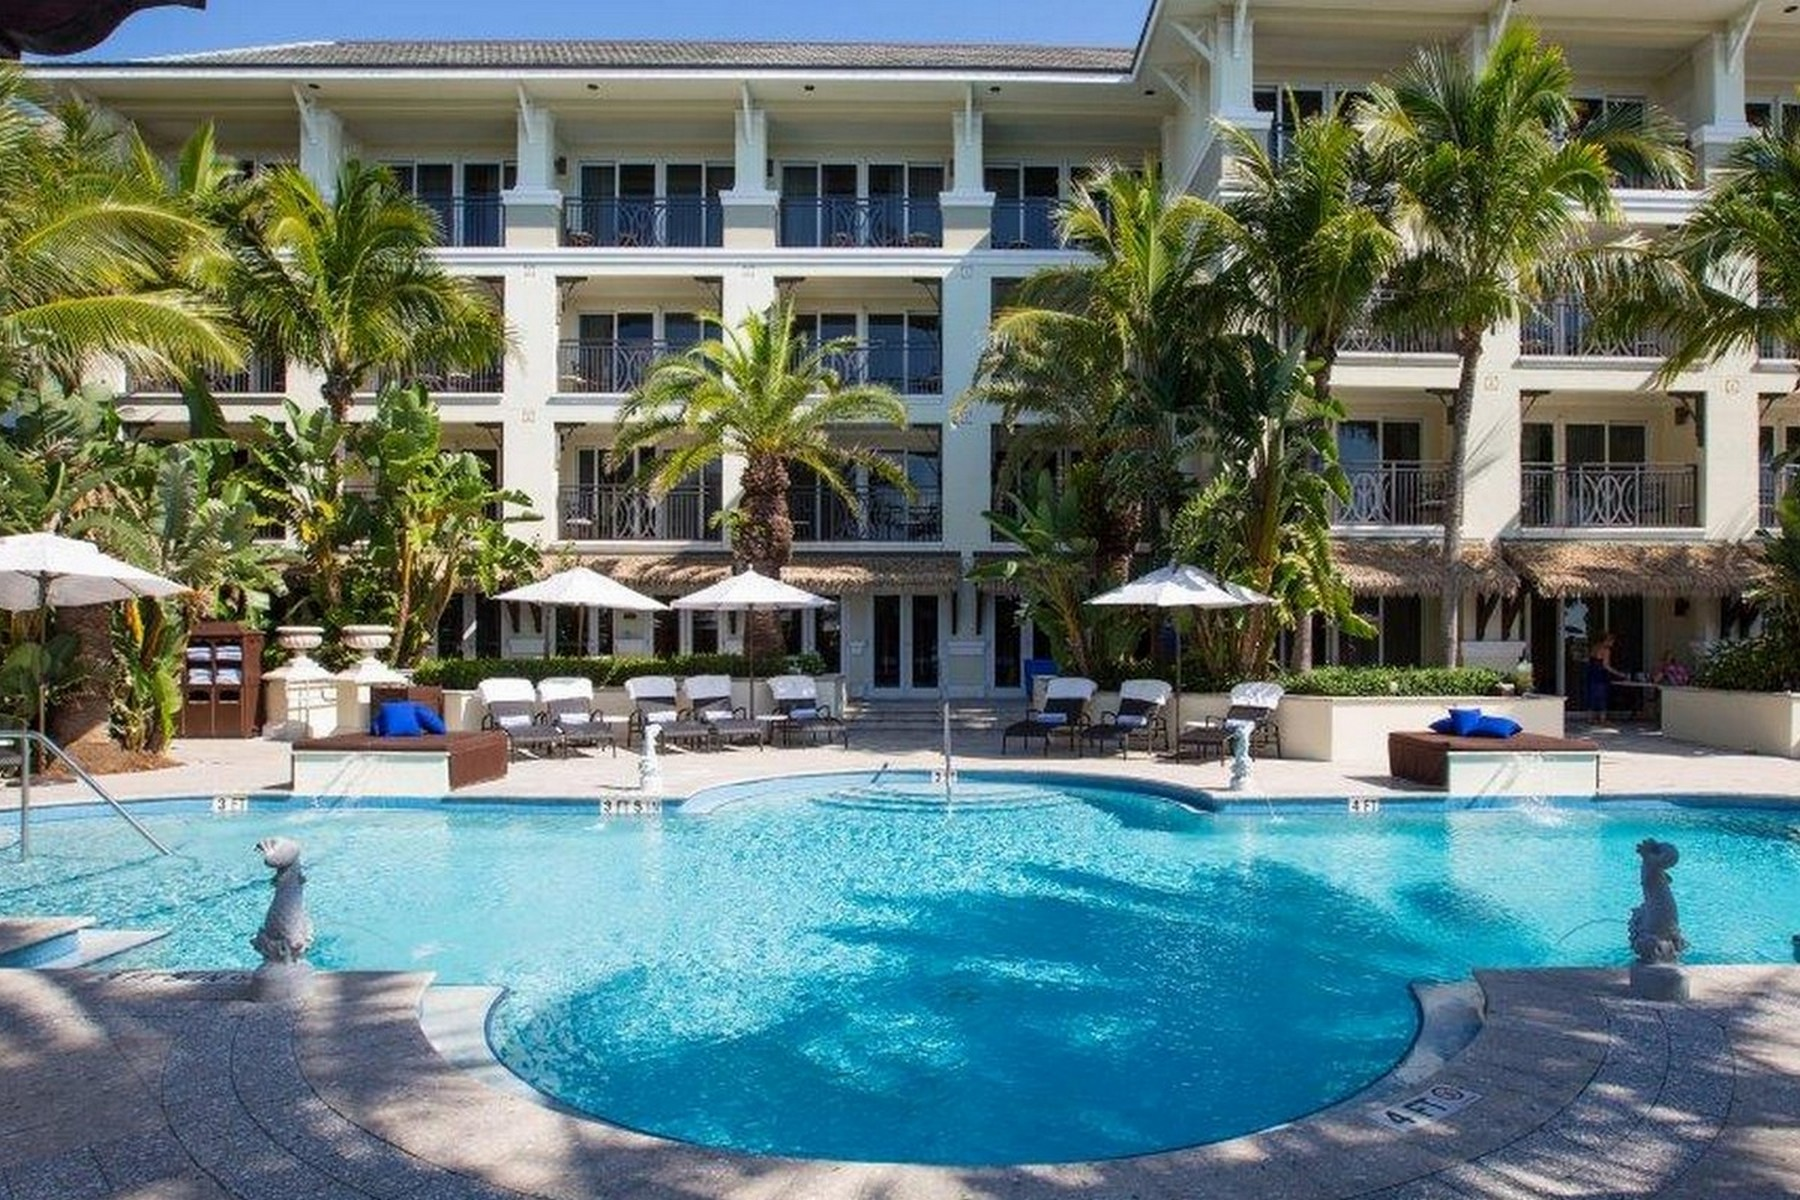 Property for Sale at Elegant Condo in Vero Beach Hotel & Spa 3500 Ocean Drive #413 Vero Beach, Florida 32963 United States